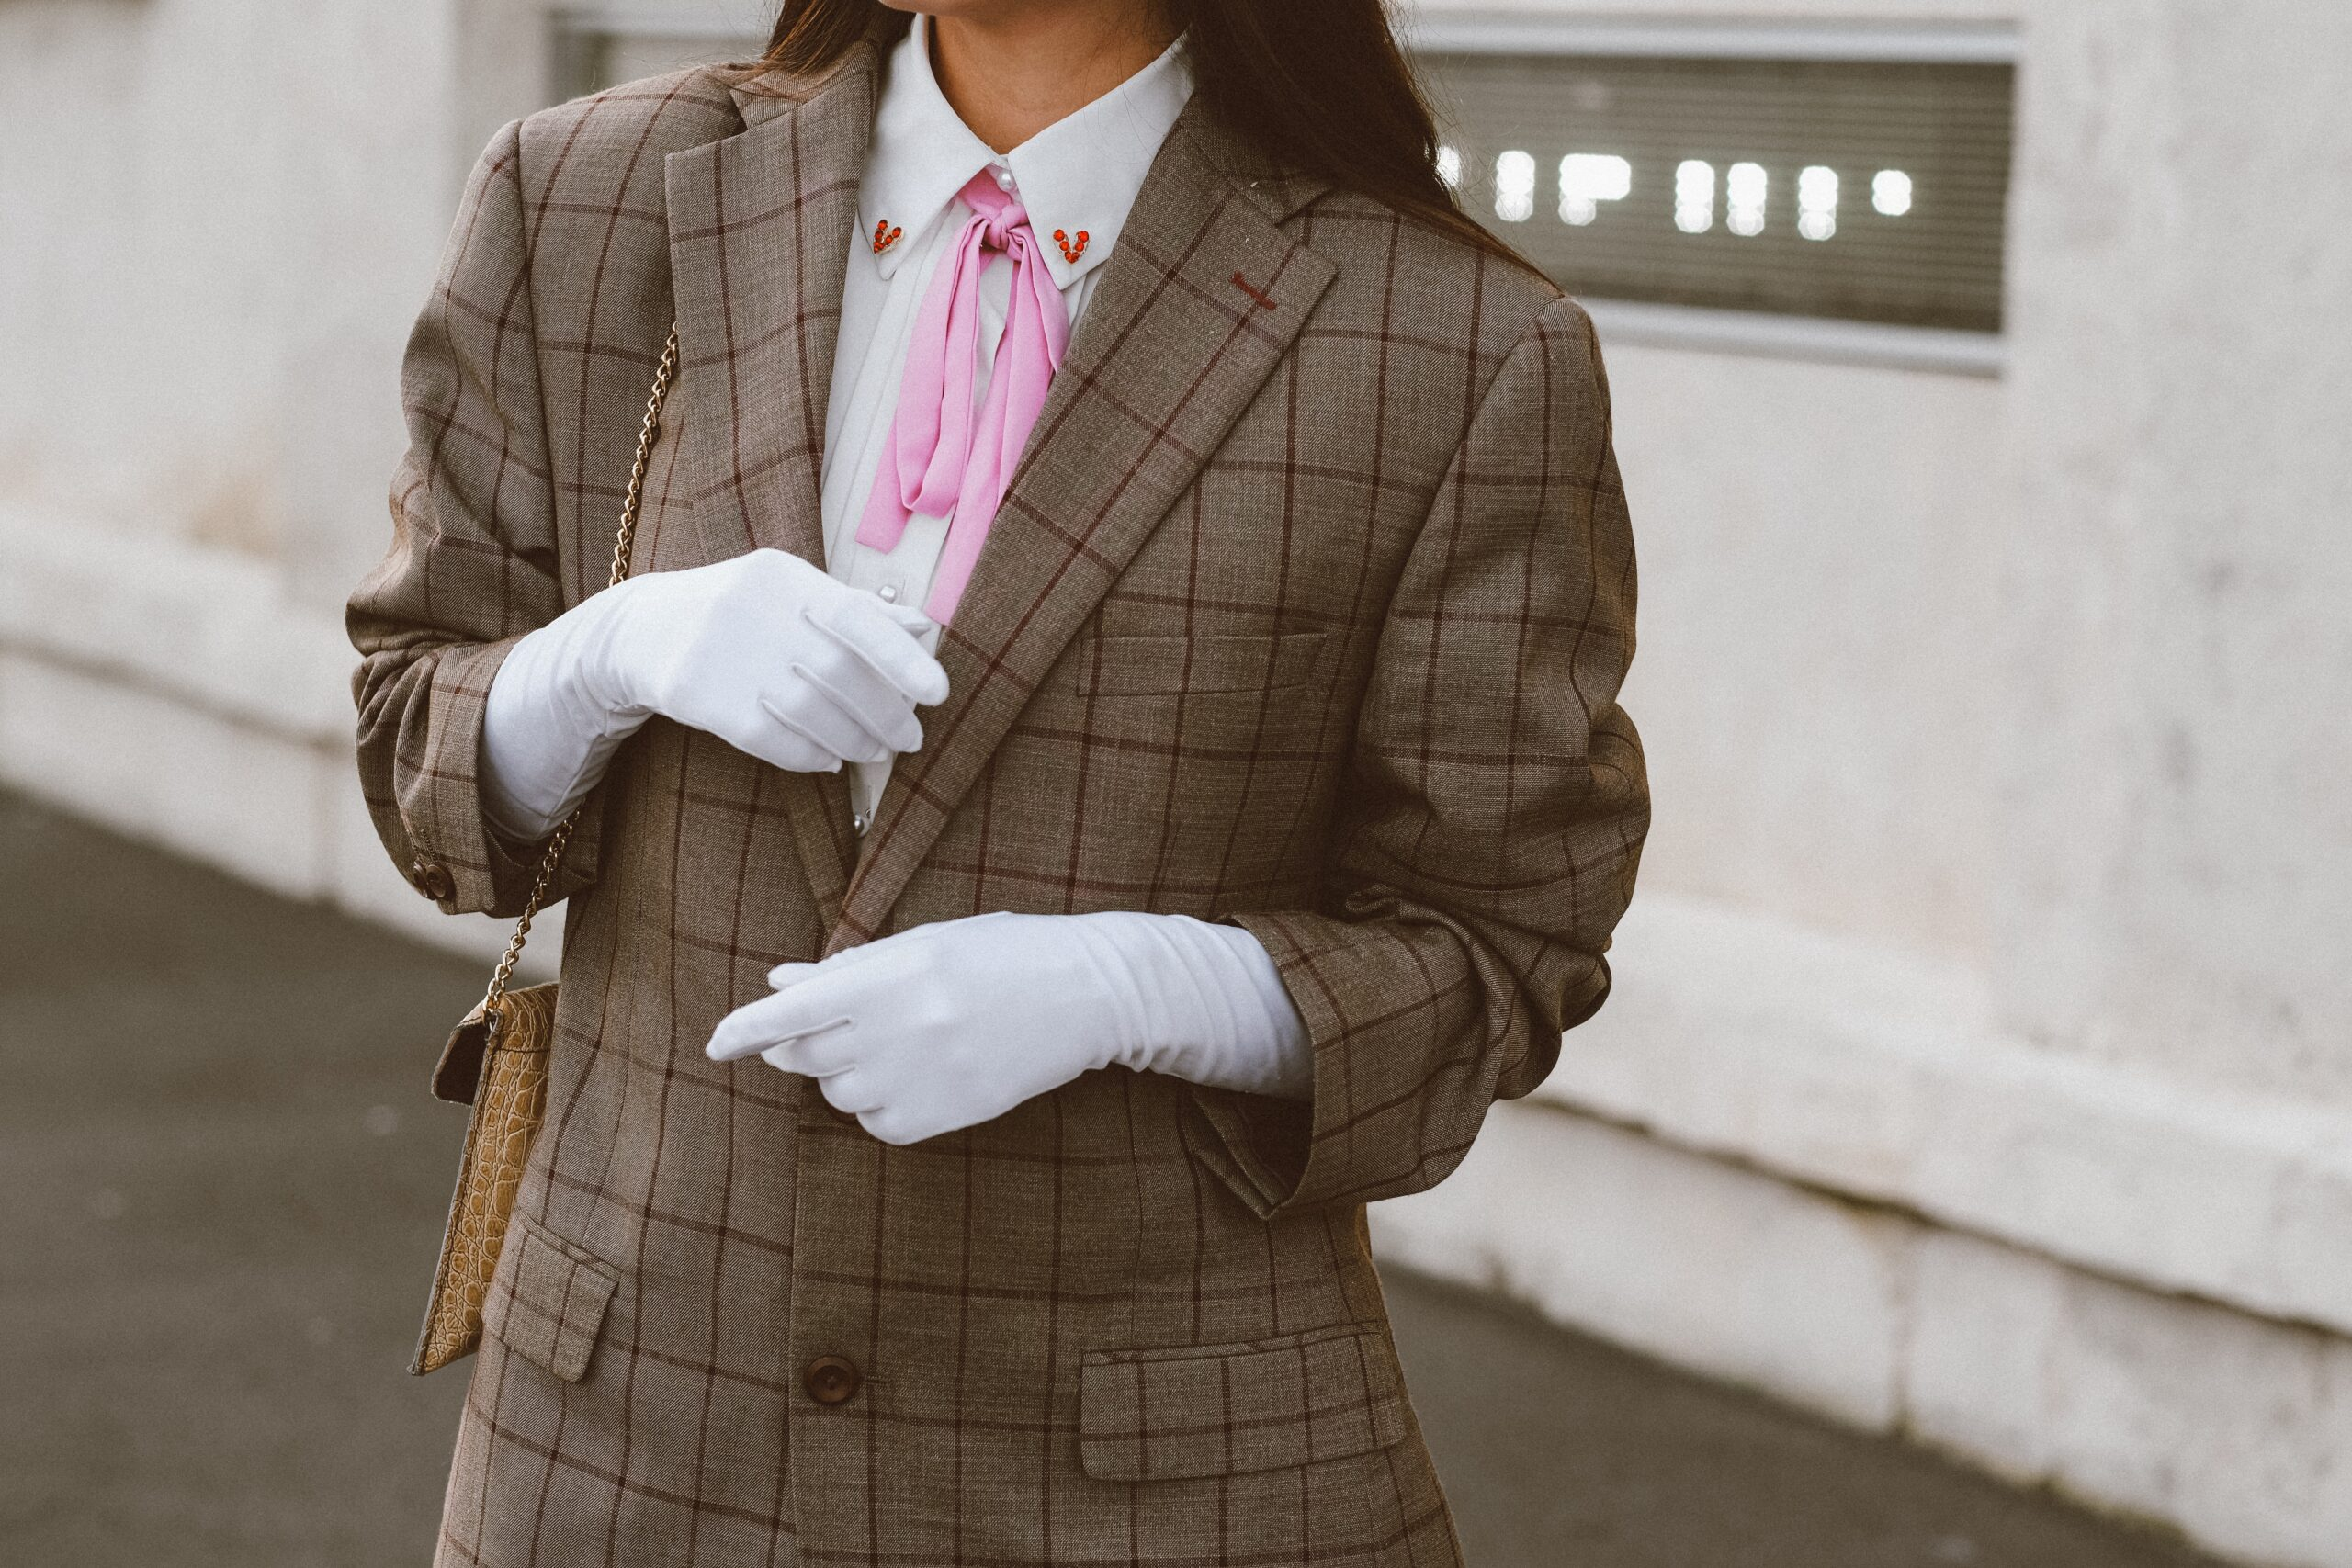 A woman in a checked suit with a white shirt and gloves